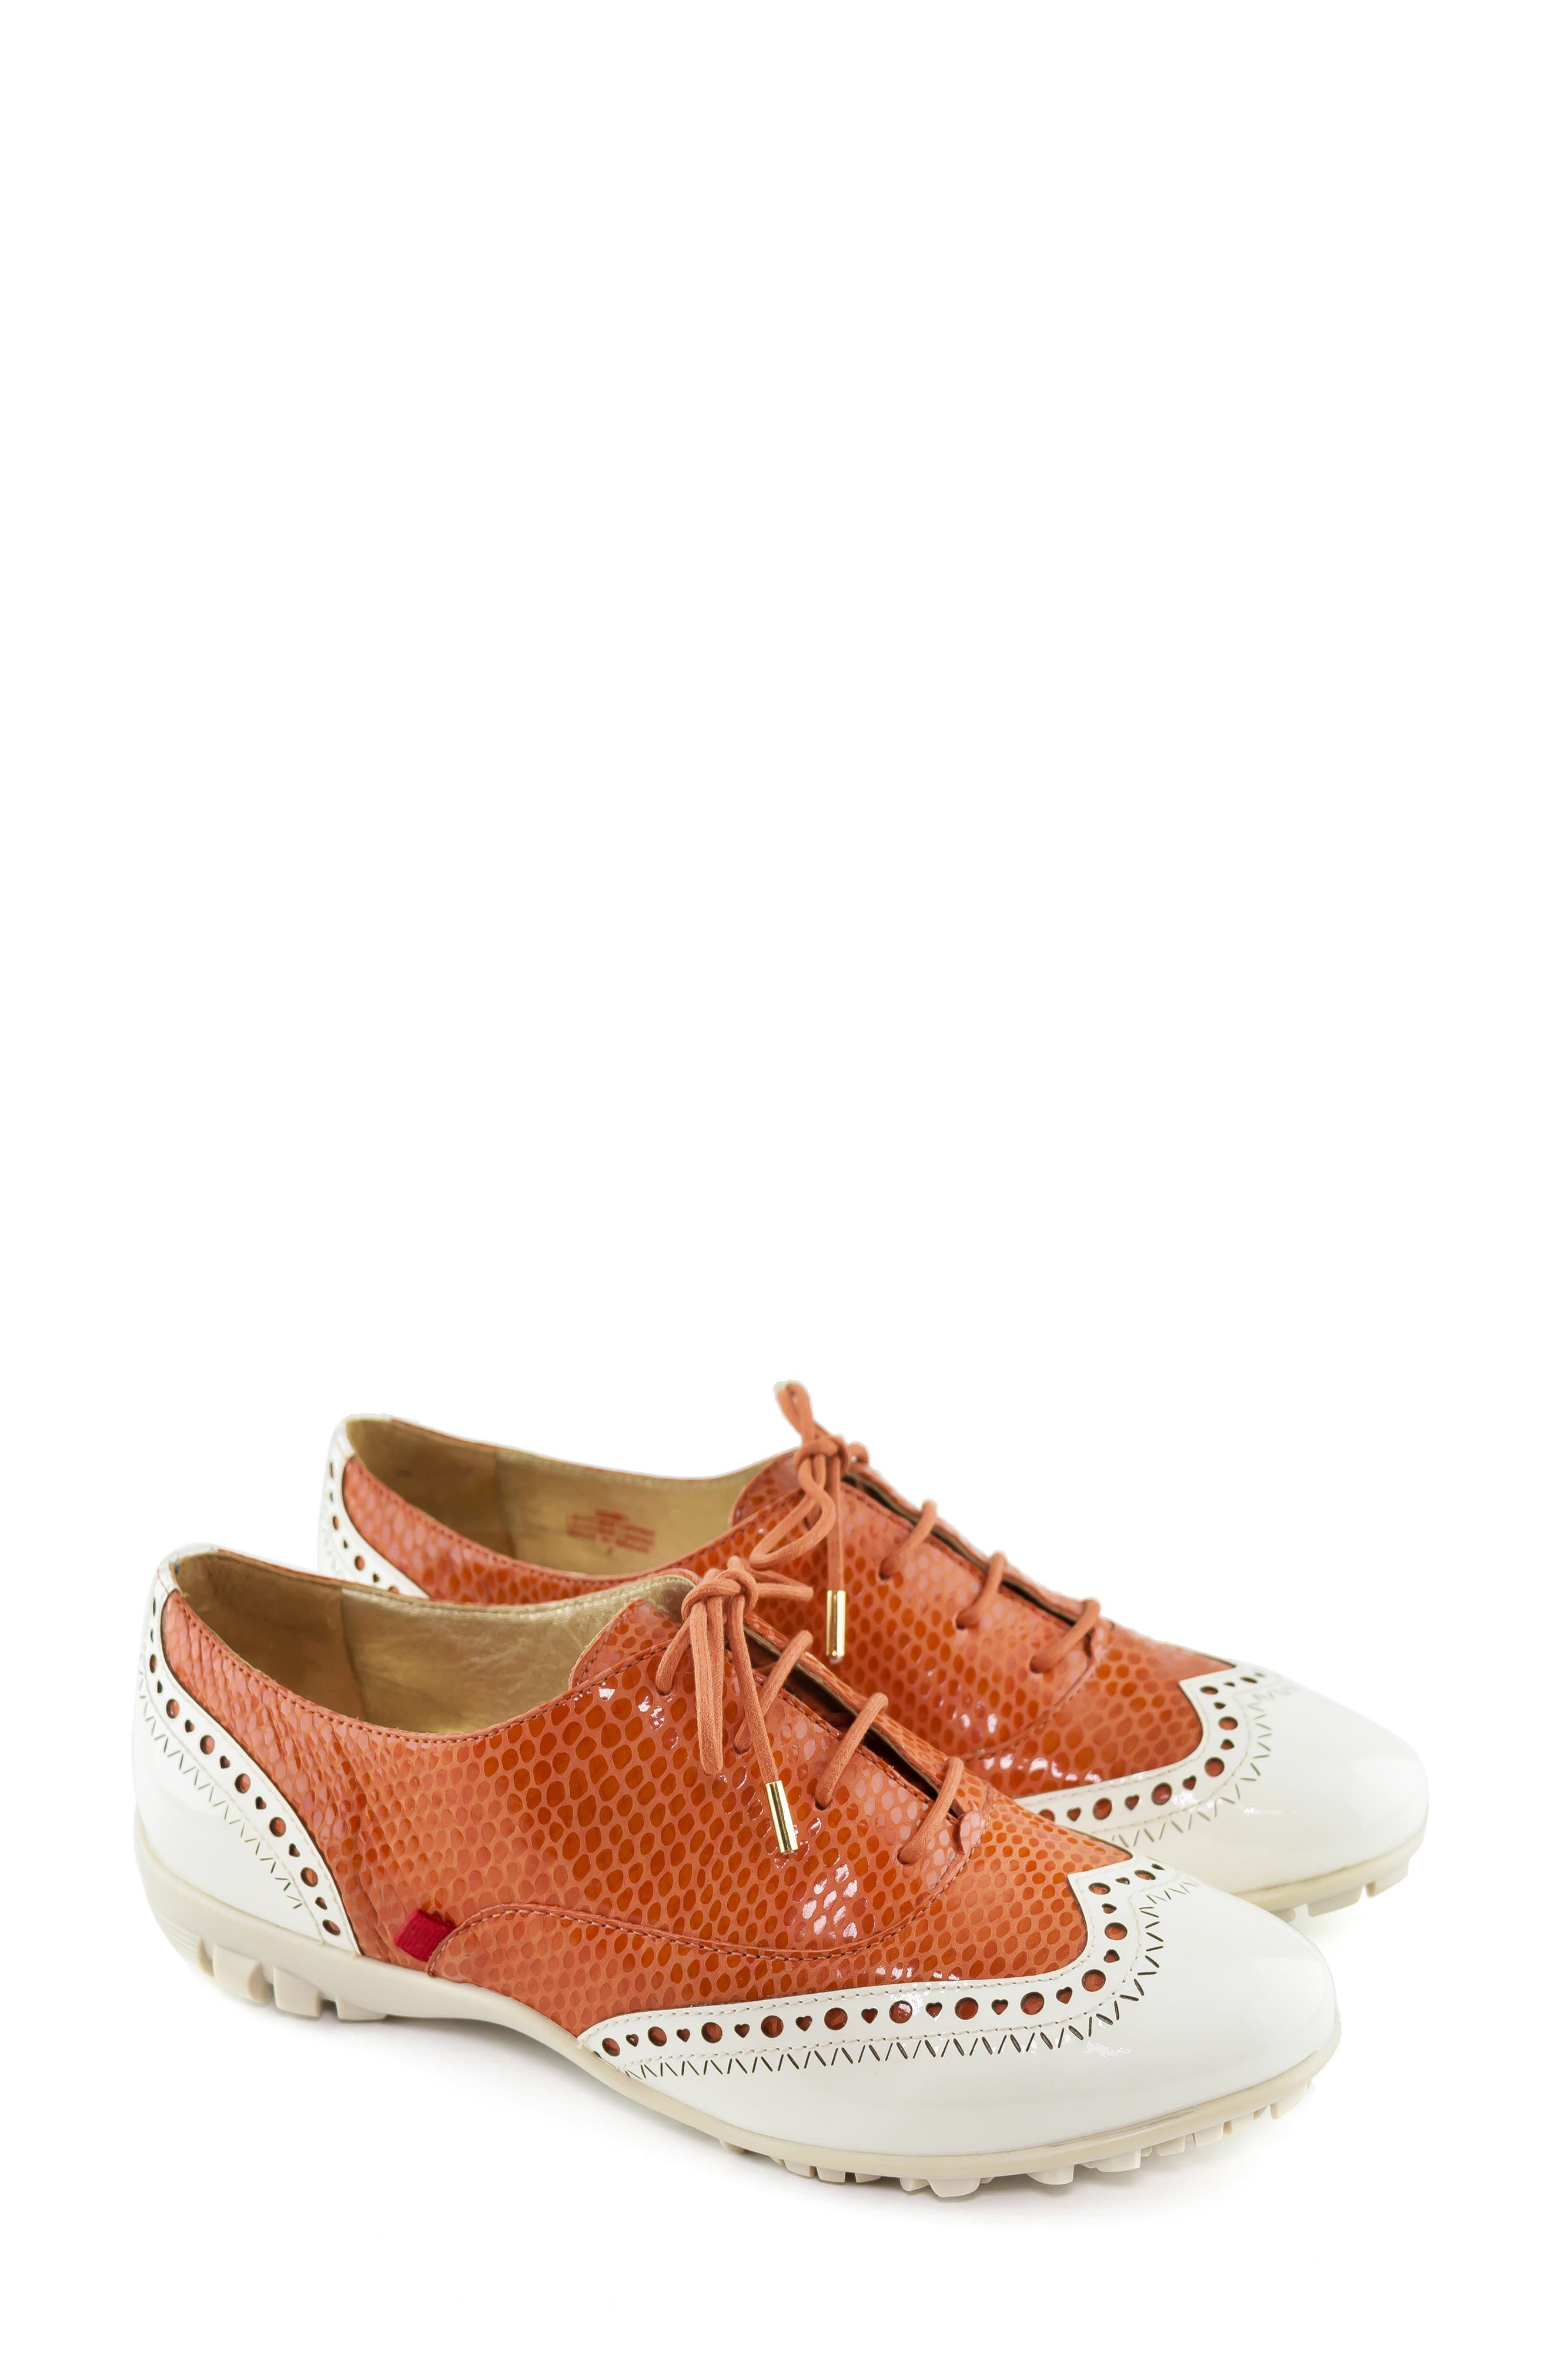 MARC JOSEPH NEW YORK, NYC Golf Loafer, Alternate thumbnail 8, color, CORAL SNAKE PRINT LEATHER